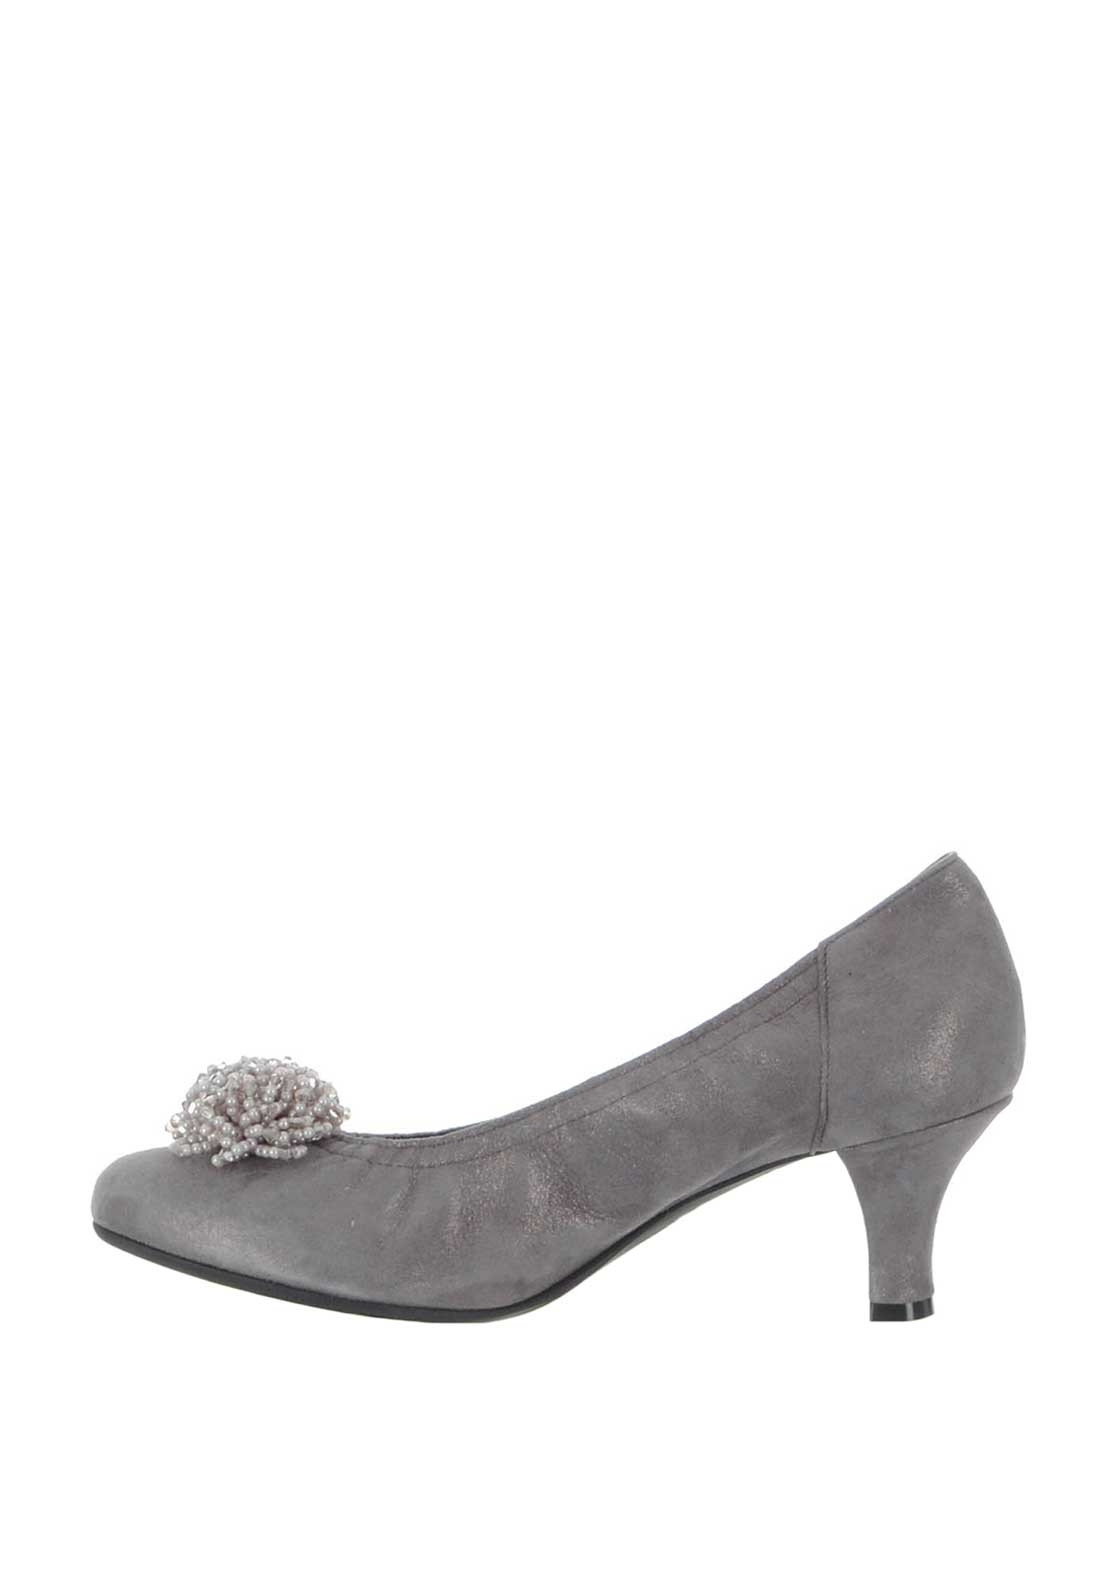 Babe Court Le Suede Low Beaded ShoesGrey PXZiOku